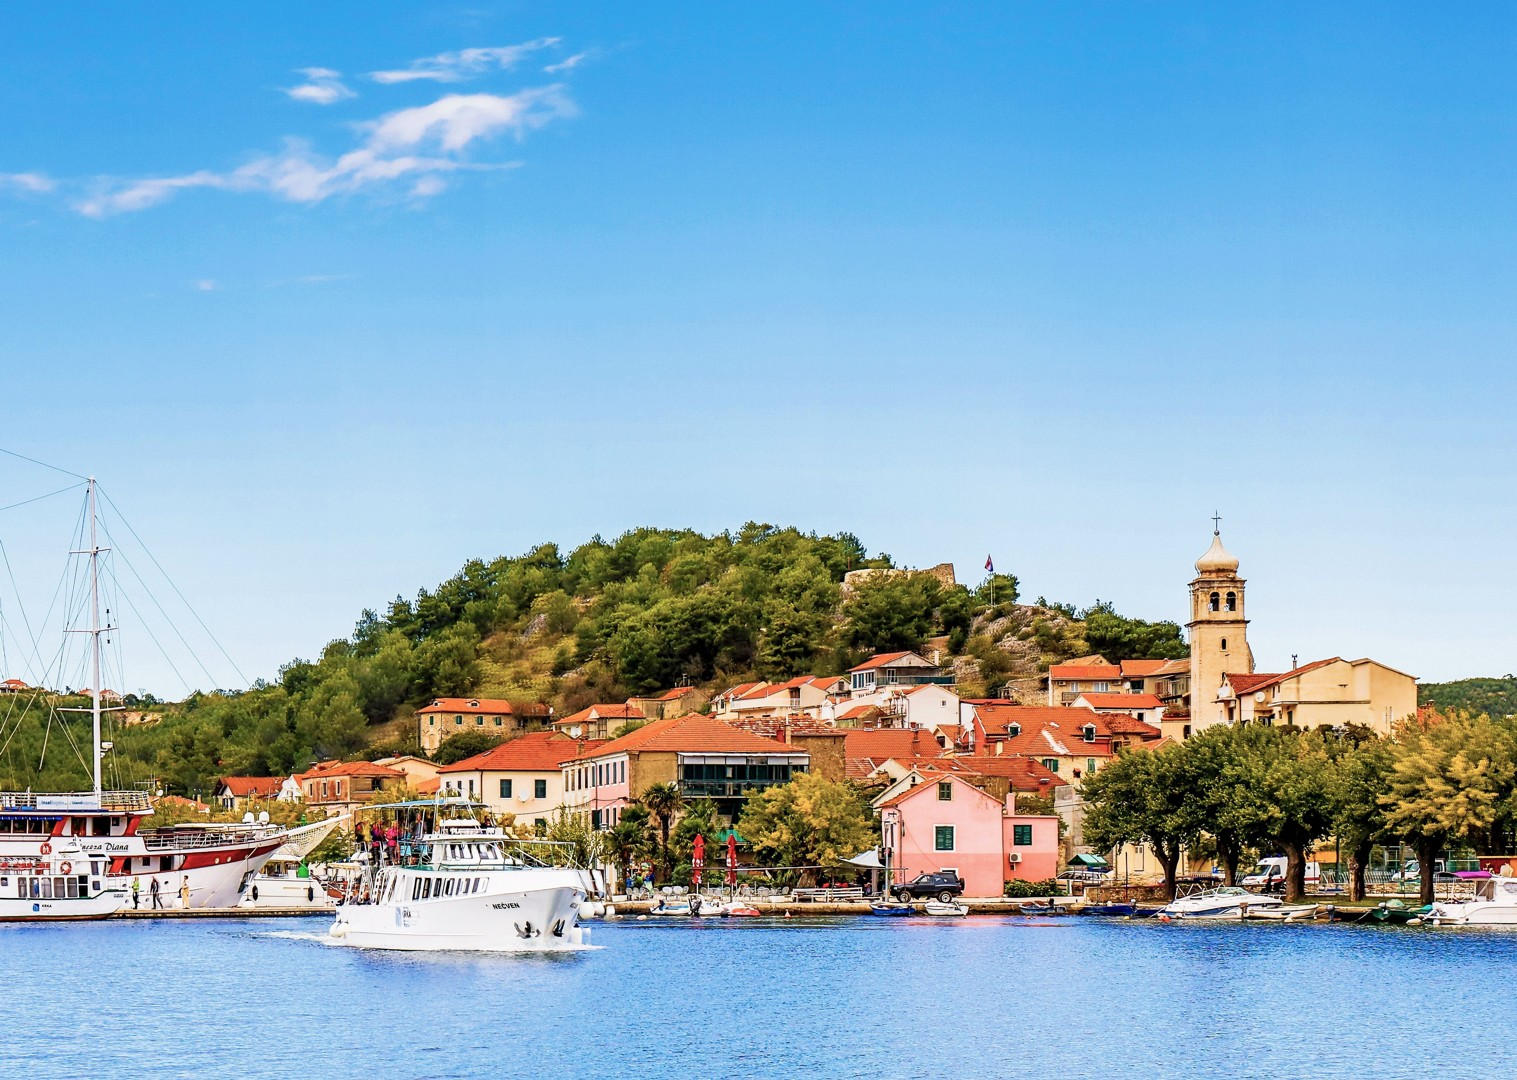 bike-and-boat-croatia-adriatic-waters-stunning.jpg - Croatia - Dalmatian National Parks and Islands Plus - Bike and Boat Holiday - Leisure Cycling